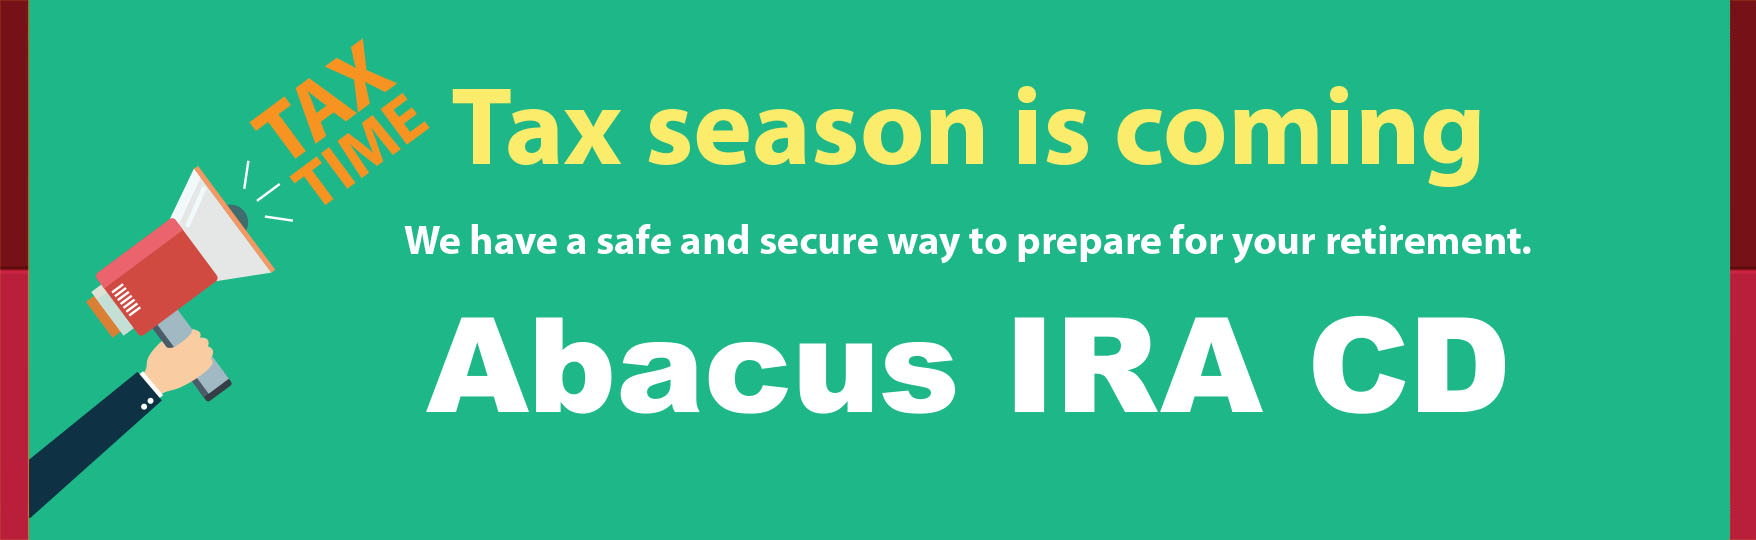 Tax season is coming. We have a safe and secure way  to prepare for your retirement. Abacus IRA CD